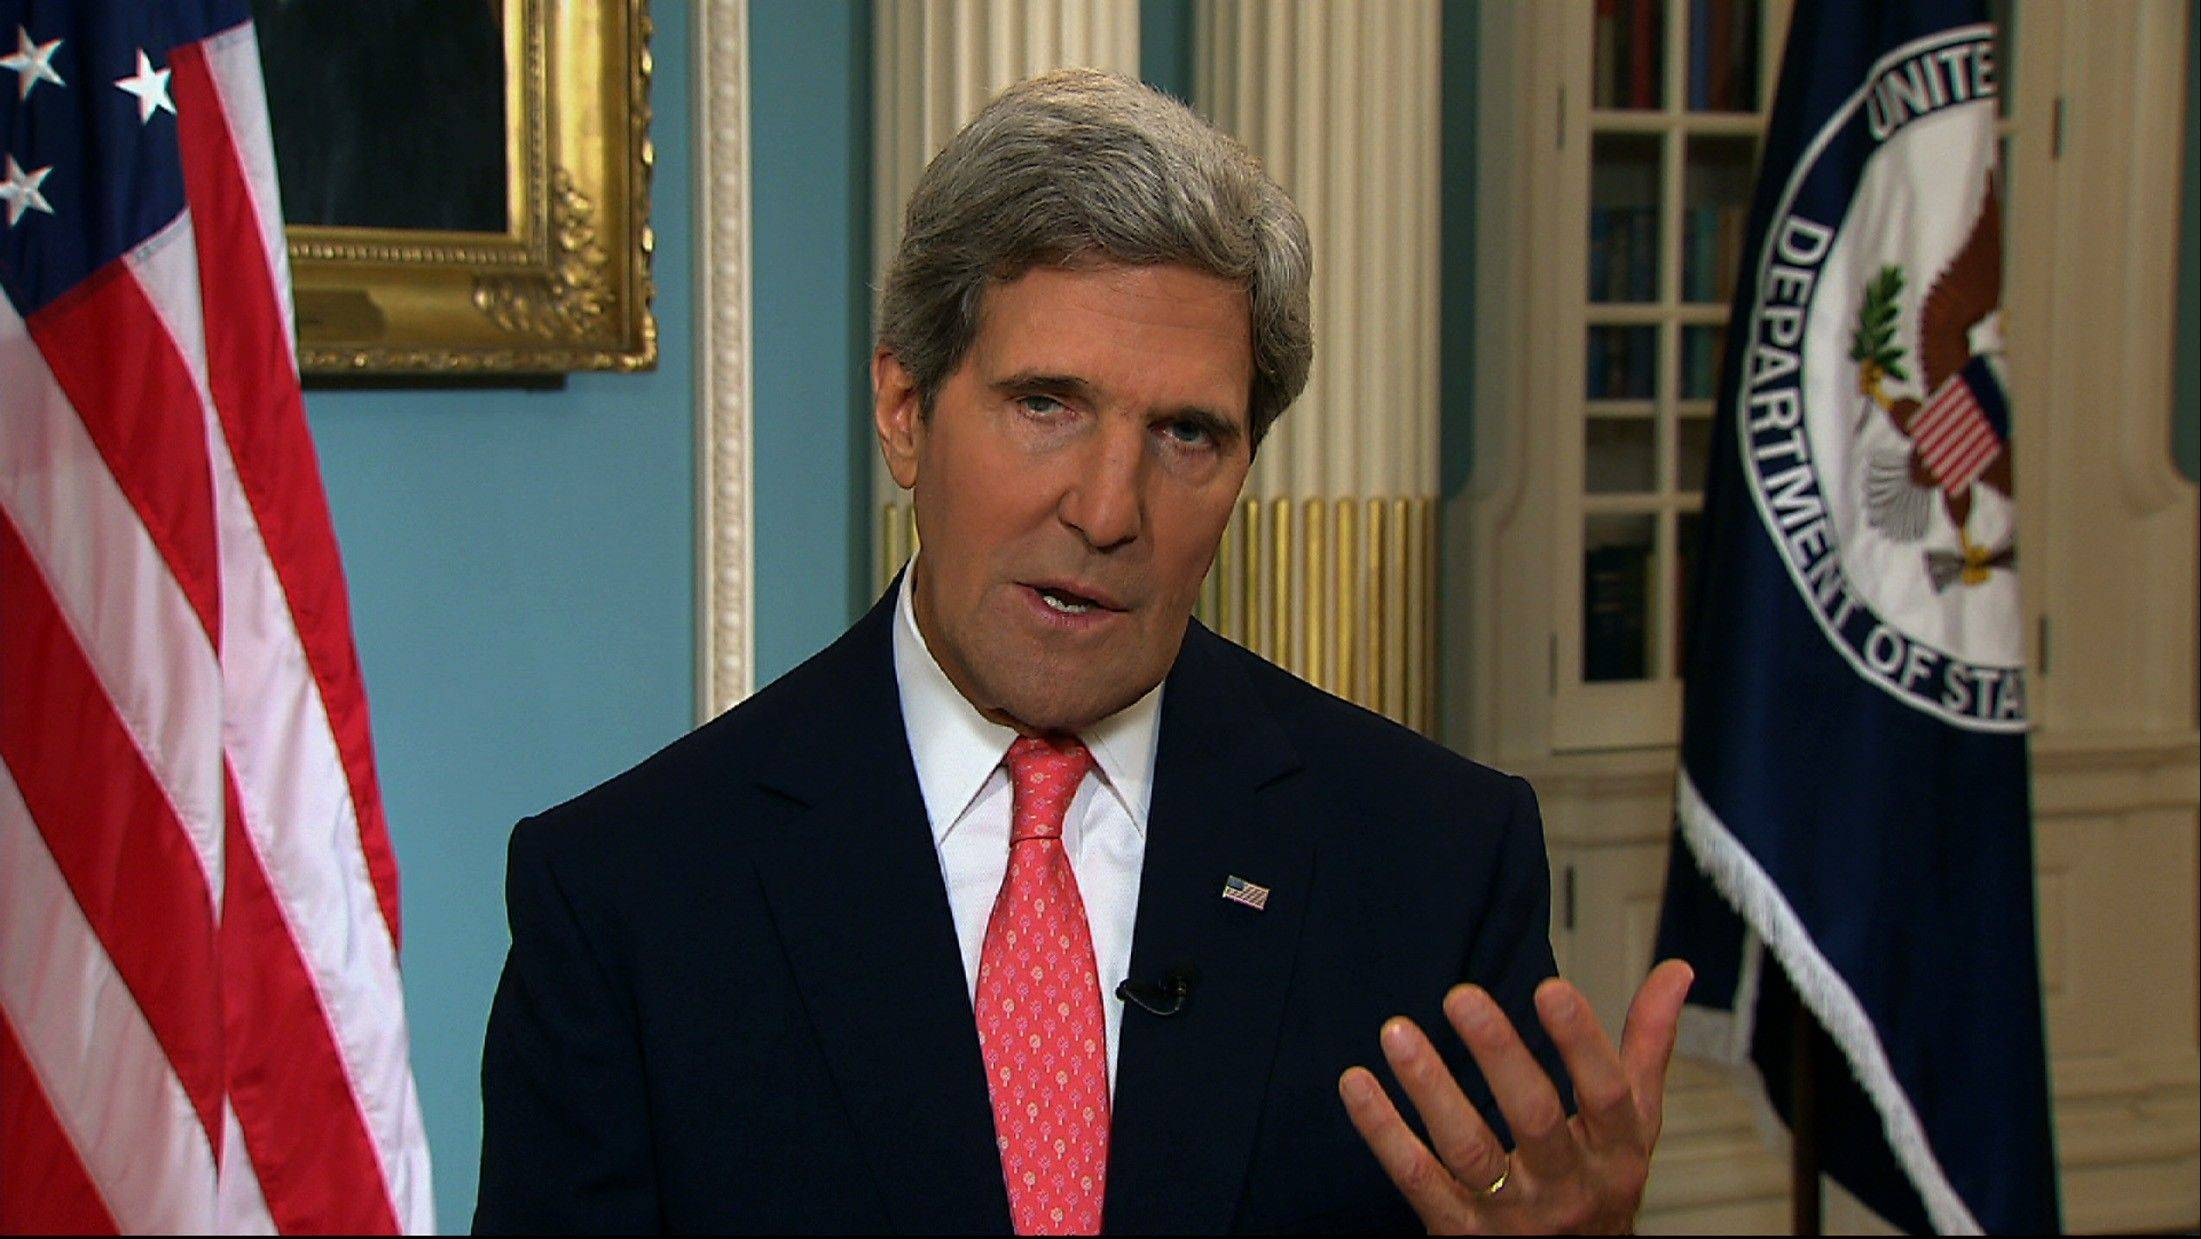 In this image from video, Secretary of State John Kerry appears in one of a series of interviews for Sunday news shows to say the case for intervention in Syria's two-and-a-half-year civil war was strengthening each day.